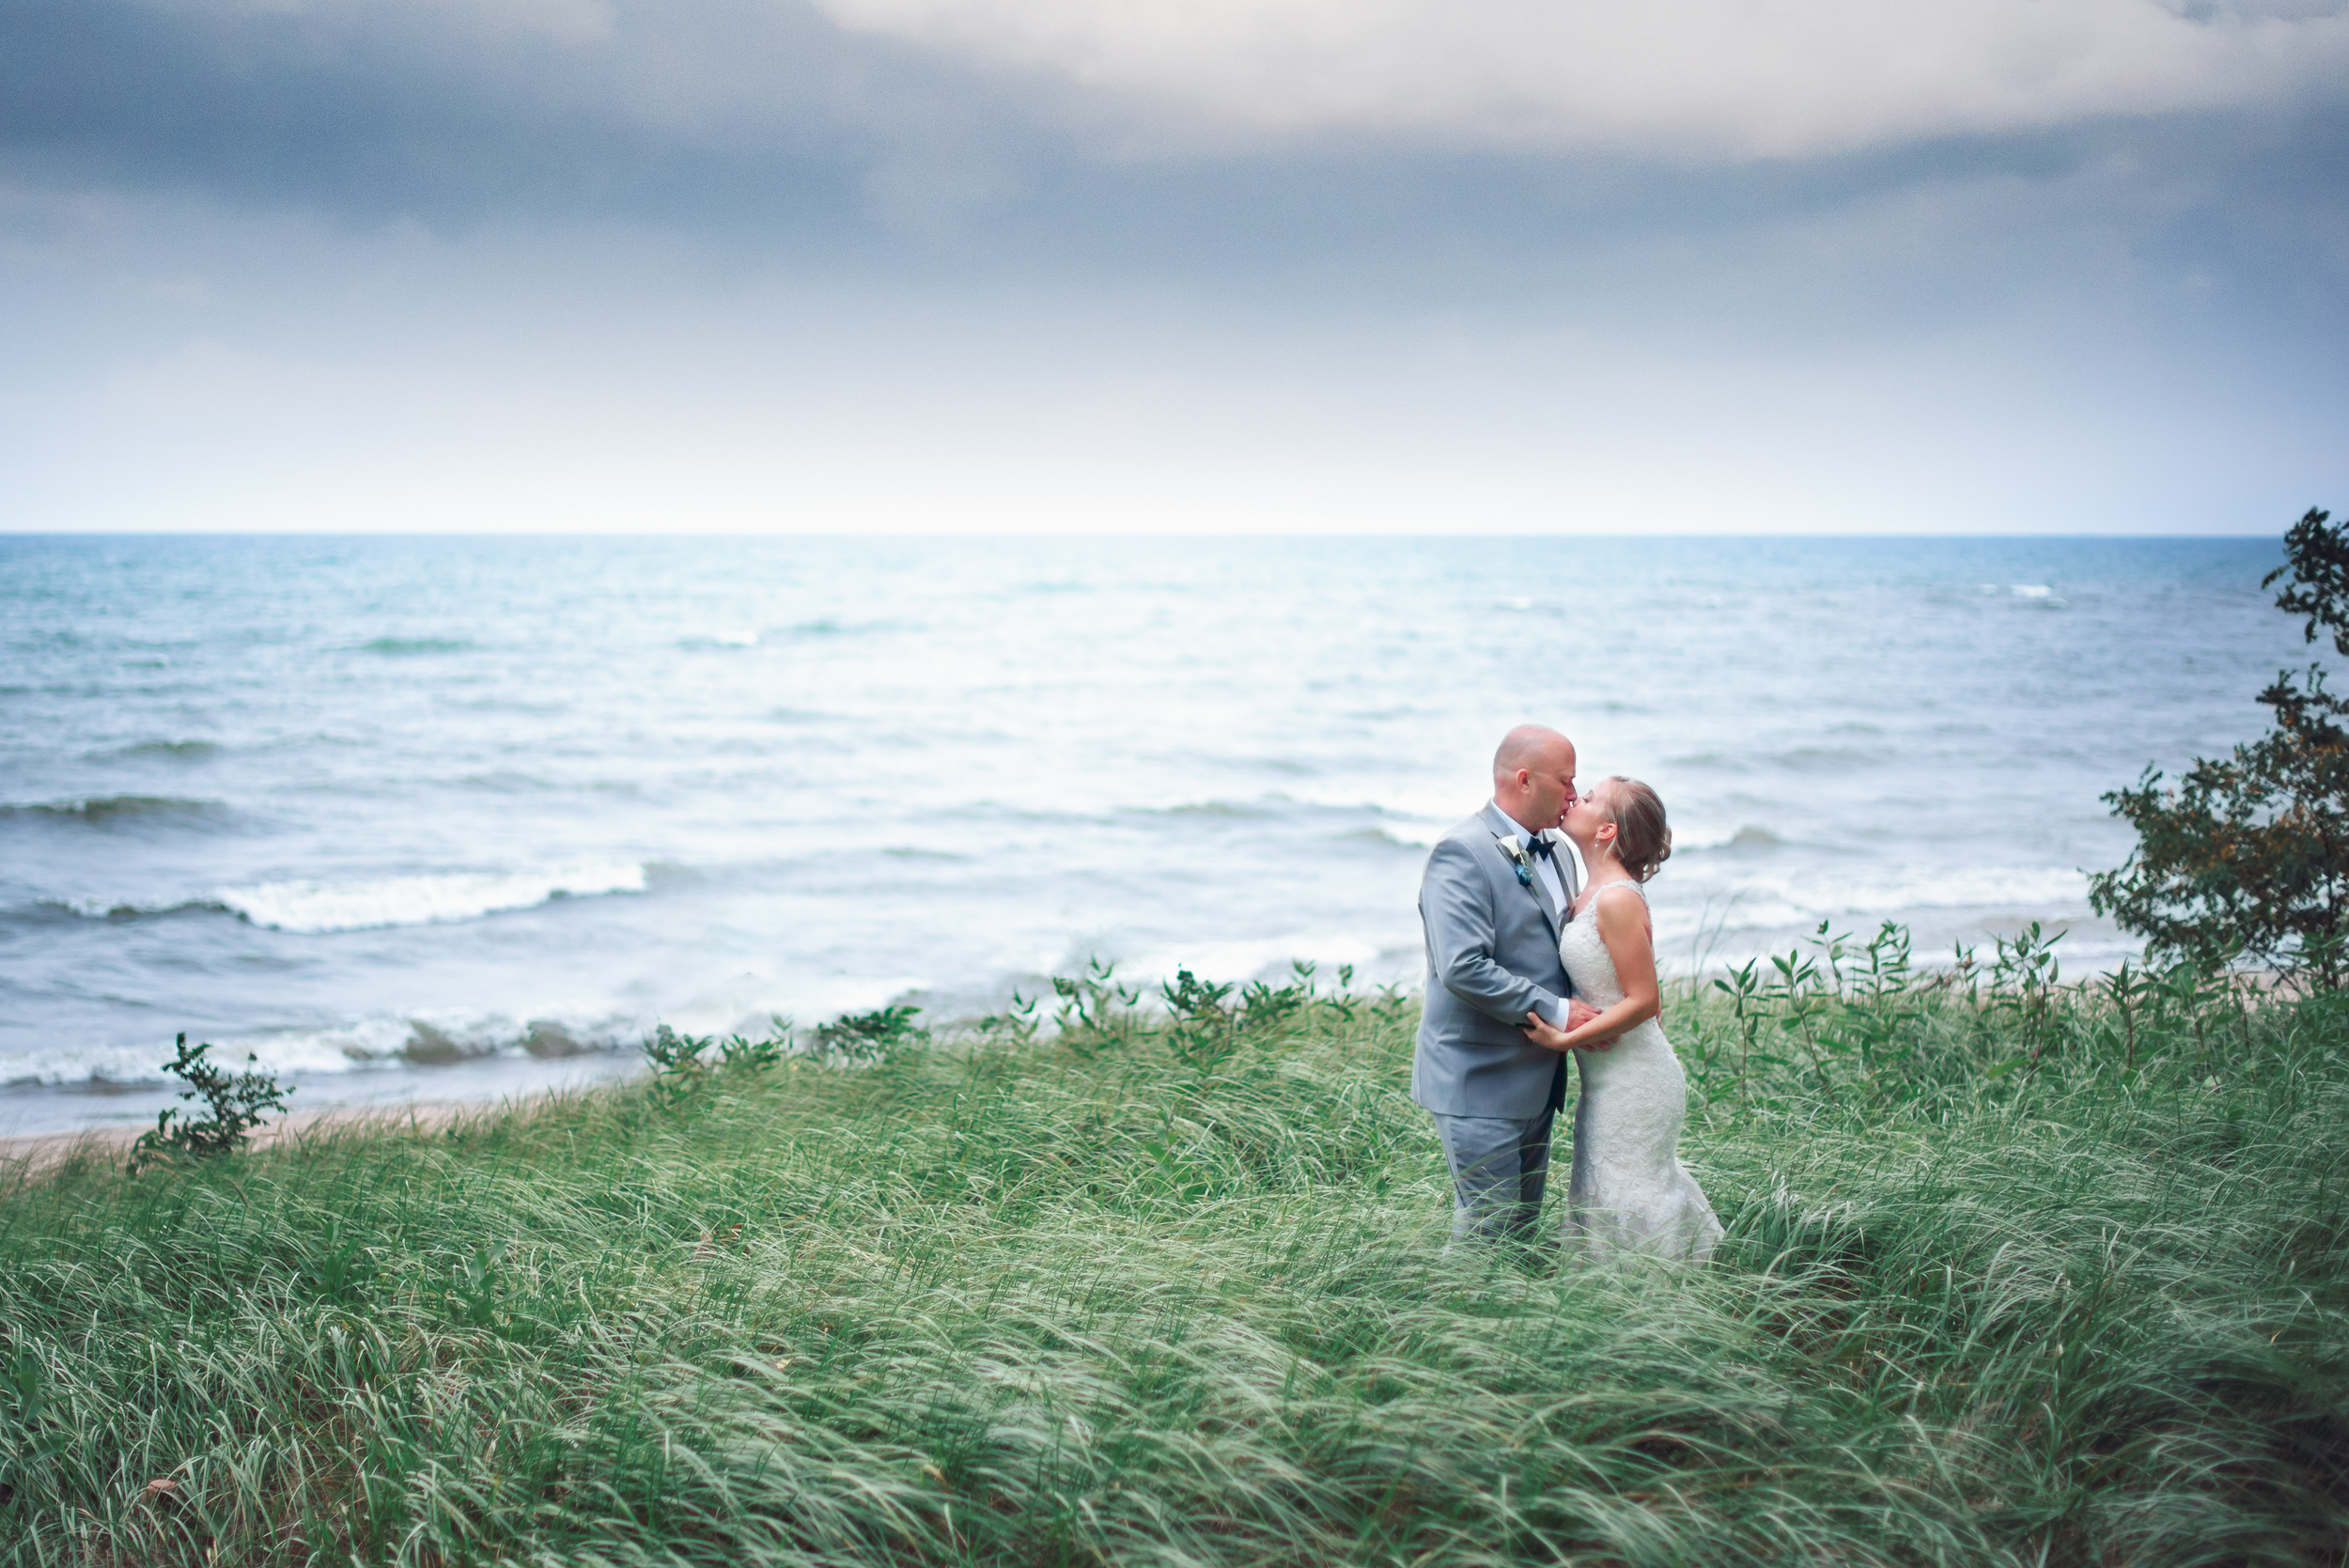 One thing we always like to let Wedding Couples know is that in order to capture beautiful portraits, it takes a little bit of time! So if you want stunning portraits of the two of you, or your bridal party, make sure you're scheduling a little bit of time for it all to happen.